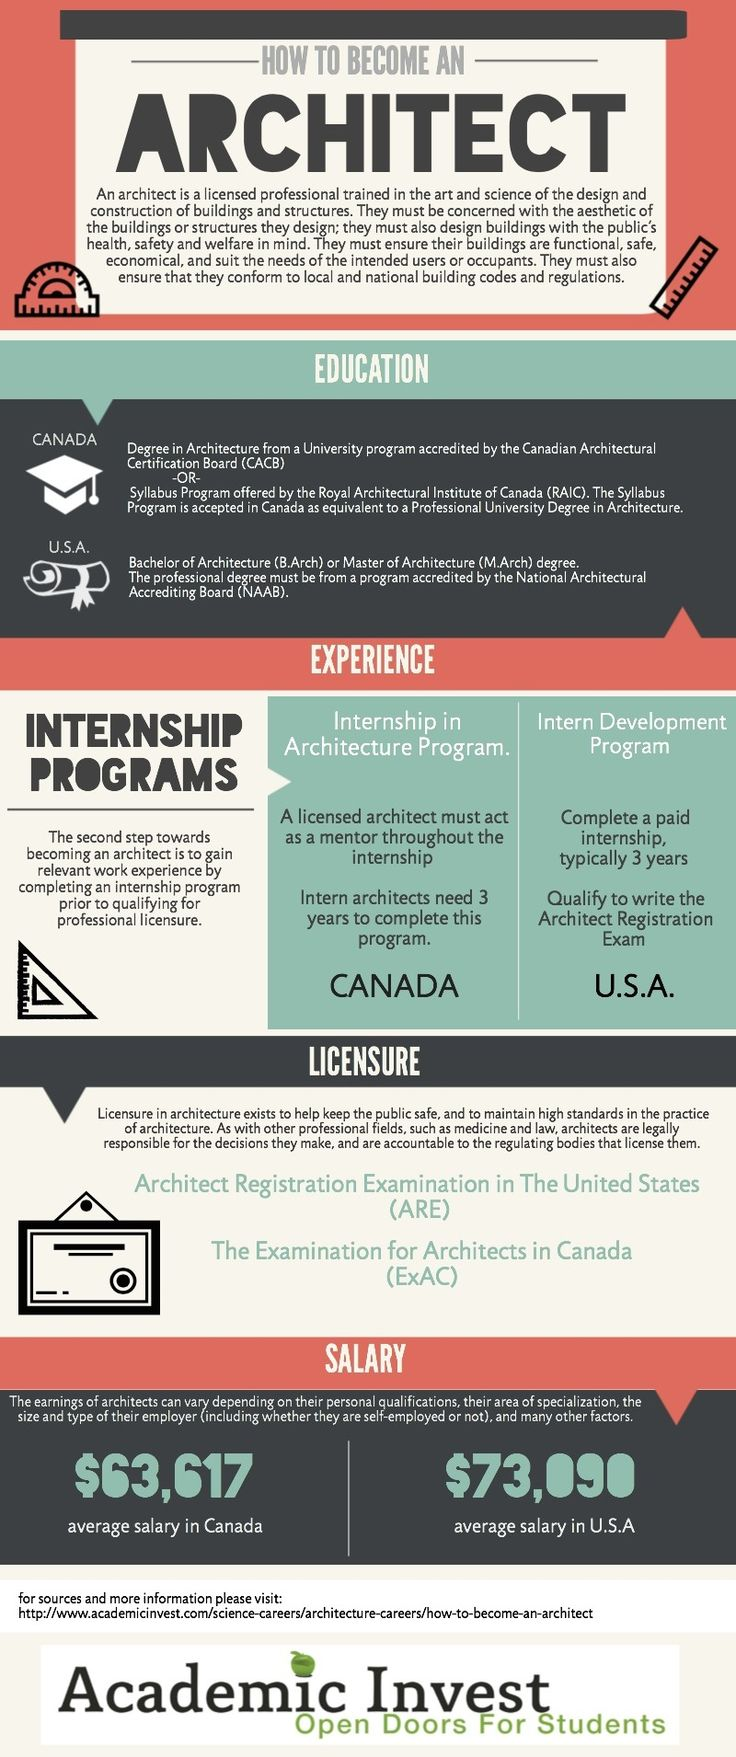 How to Become an Architect --- Architect Career Path Guide Infograph http://www.academicinvest.com/science-careers/architecture-careers/how-to-become-an-architect